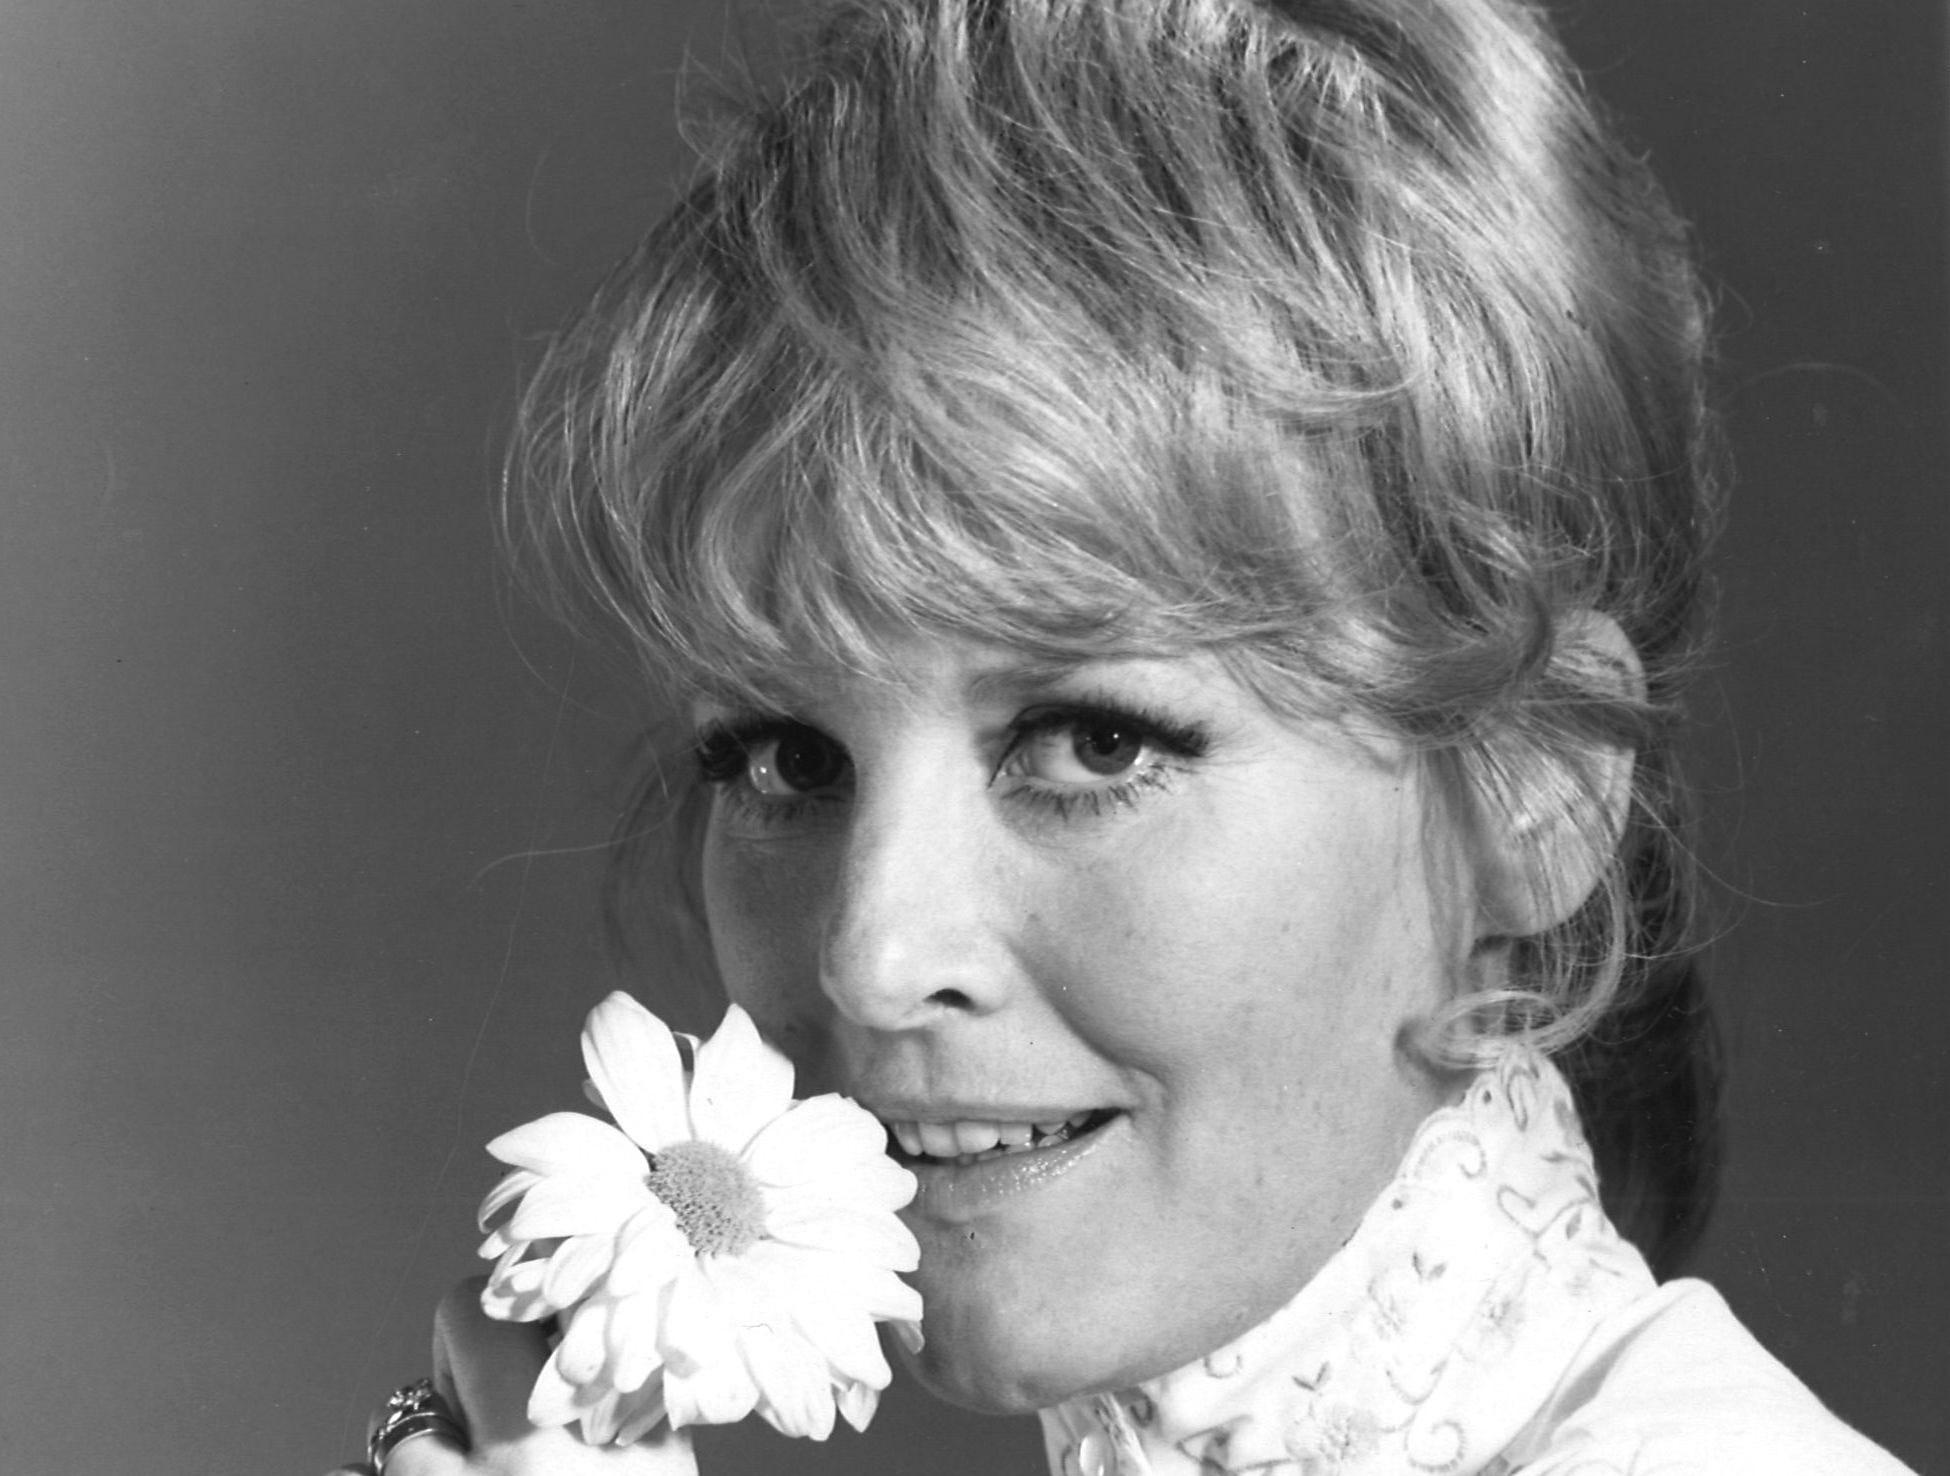 In 1970, Petula Clark appears in two network specials. One is for NBC; the other for ABC.